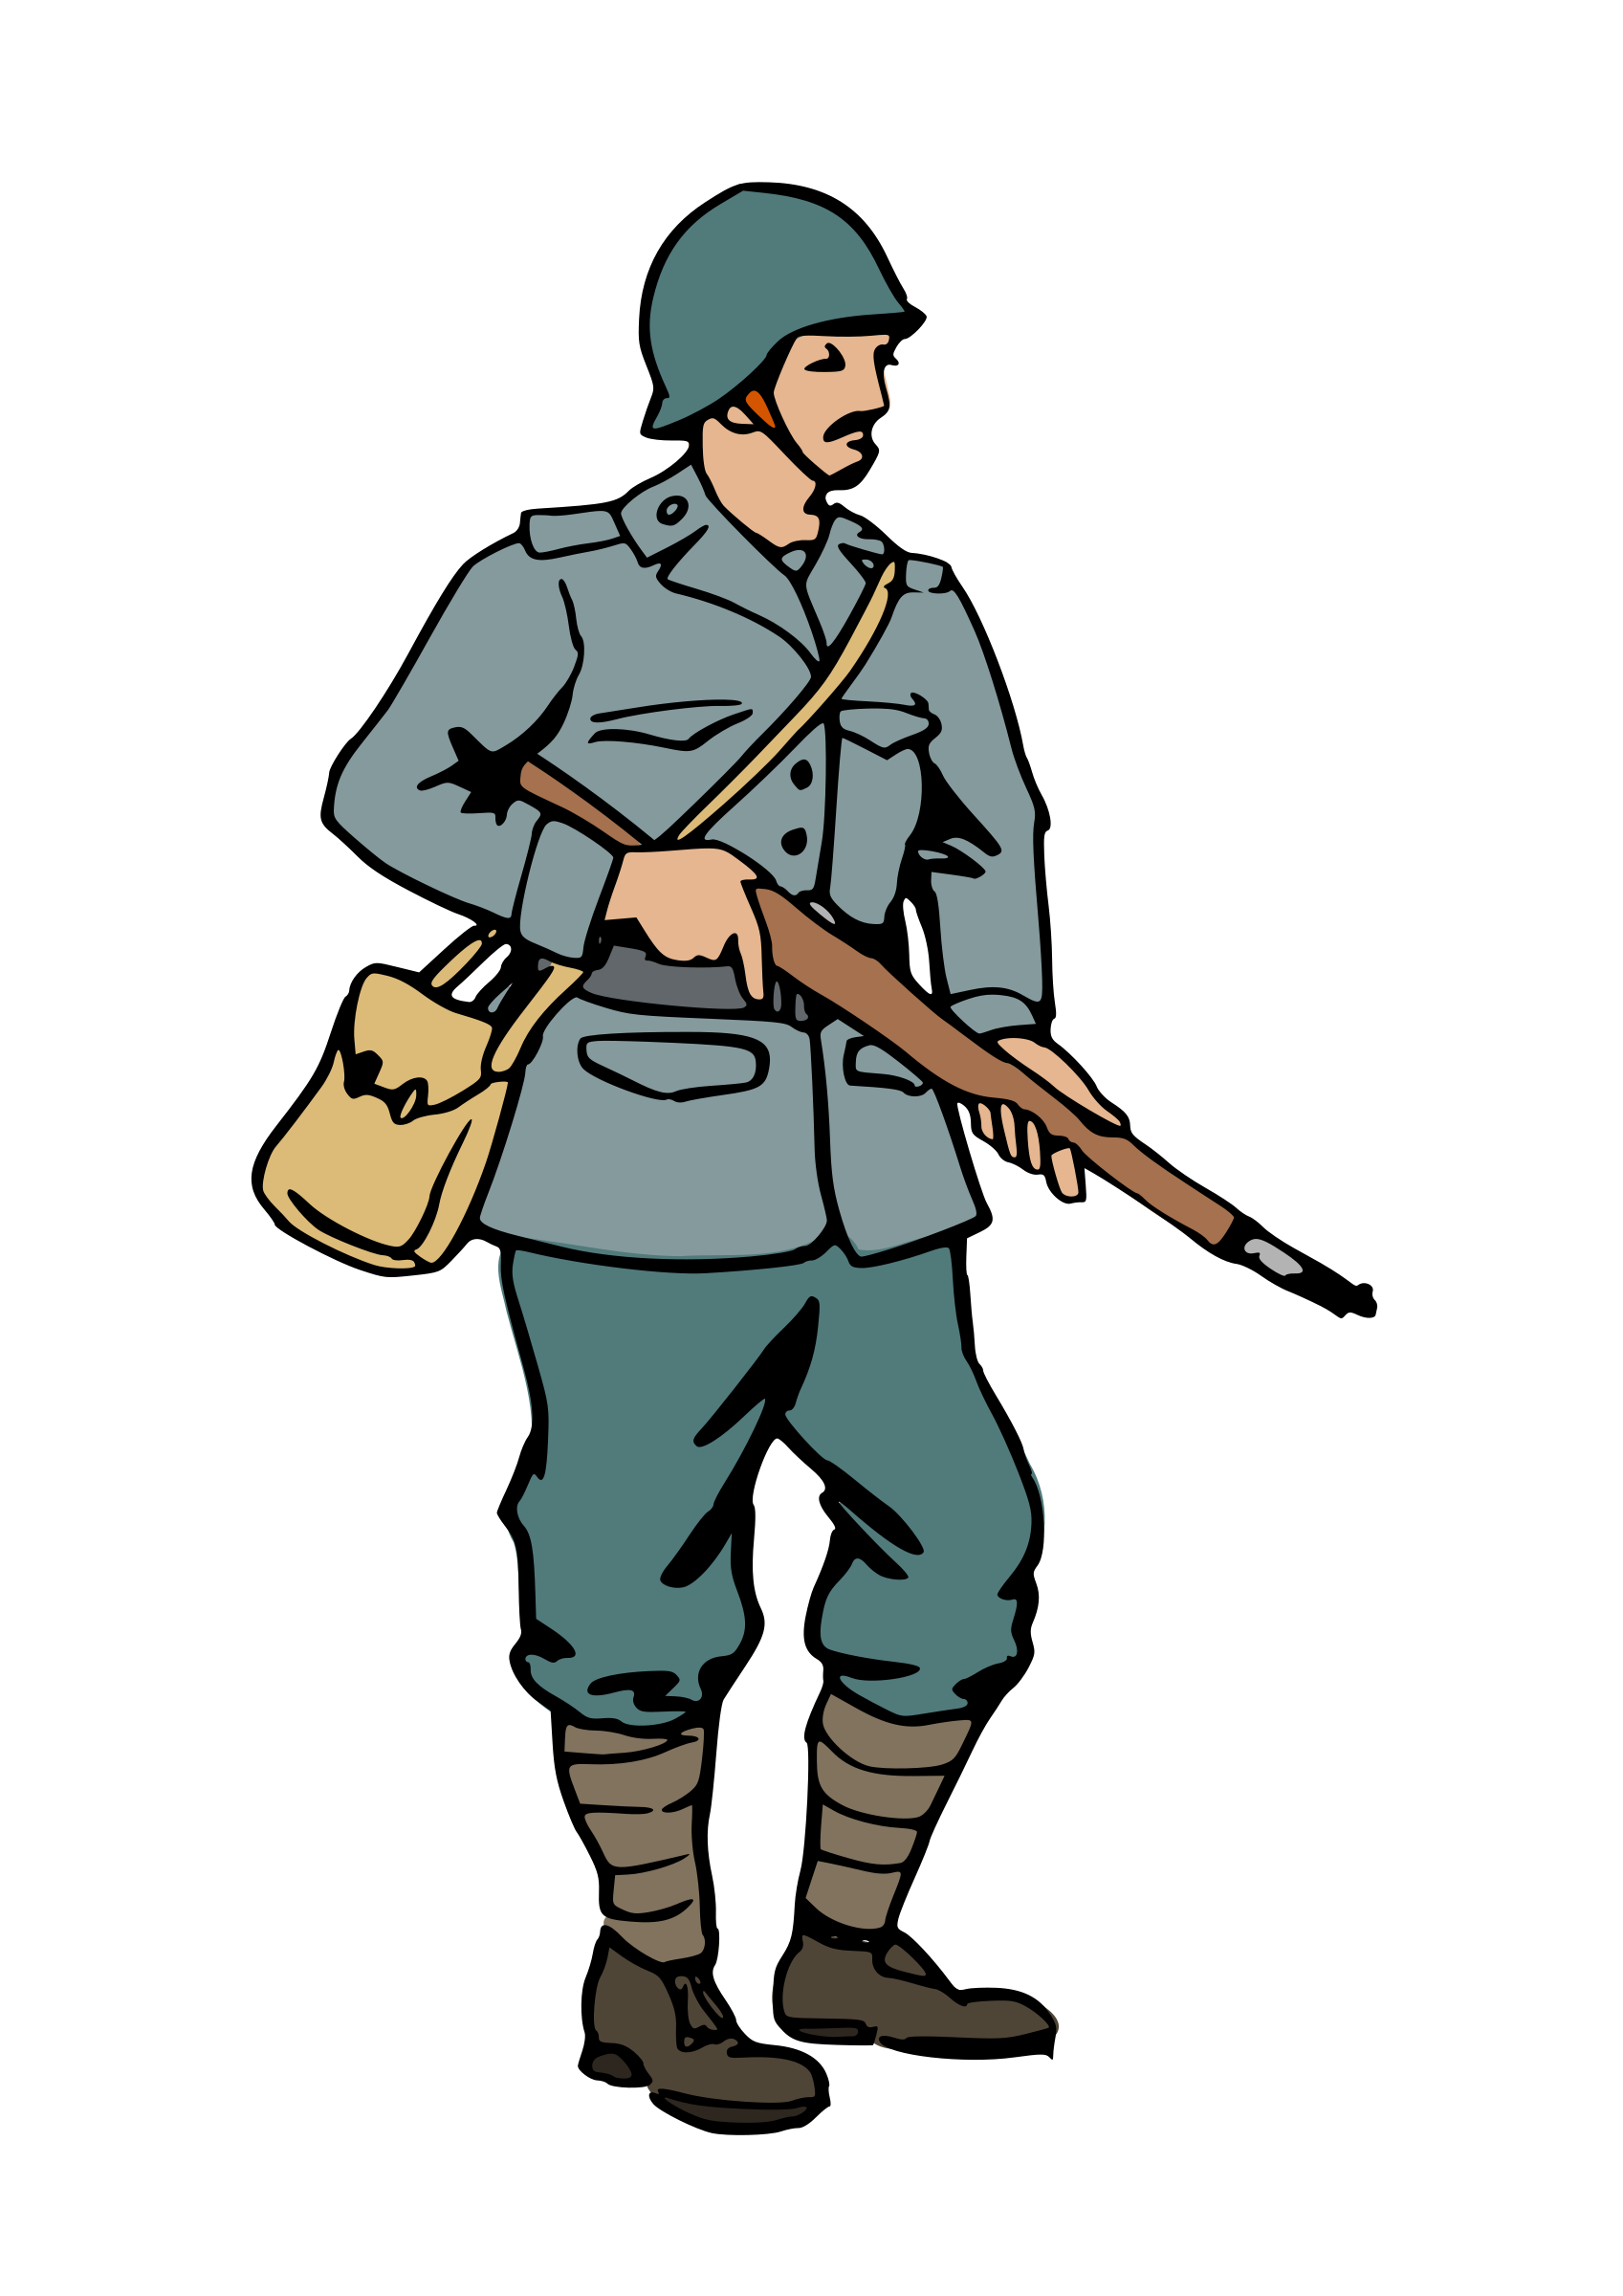 Italian soldier of WW2 by benj